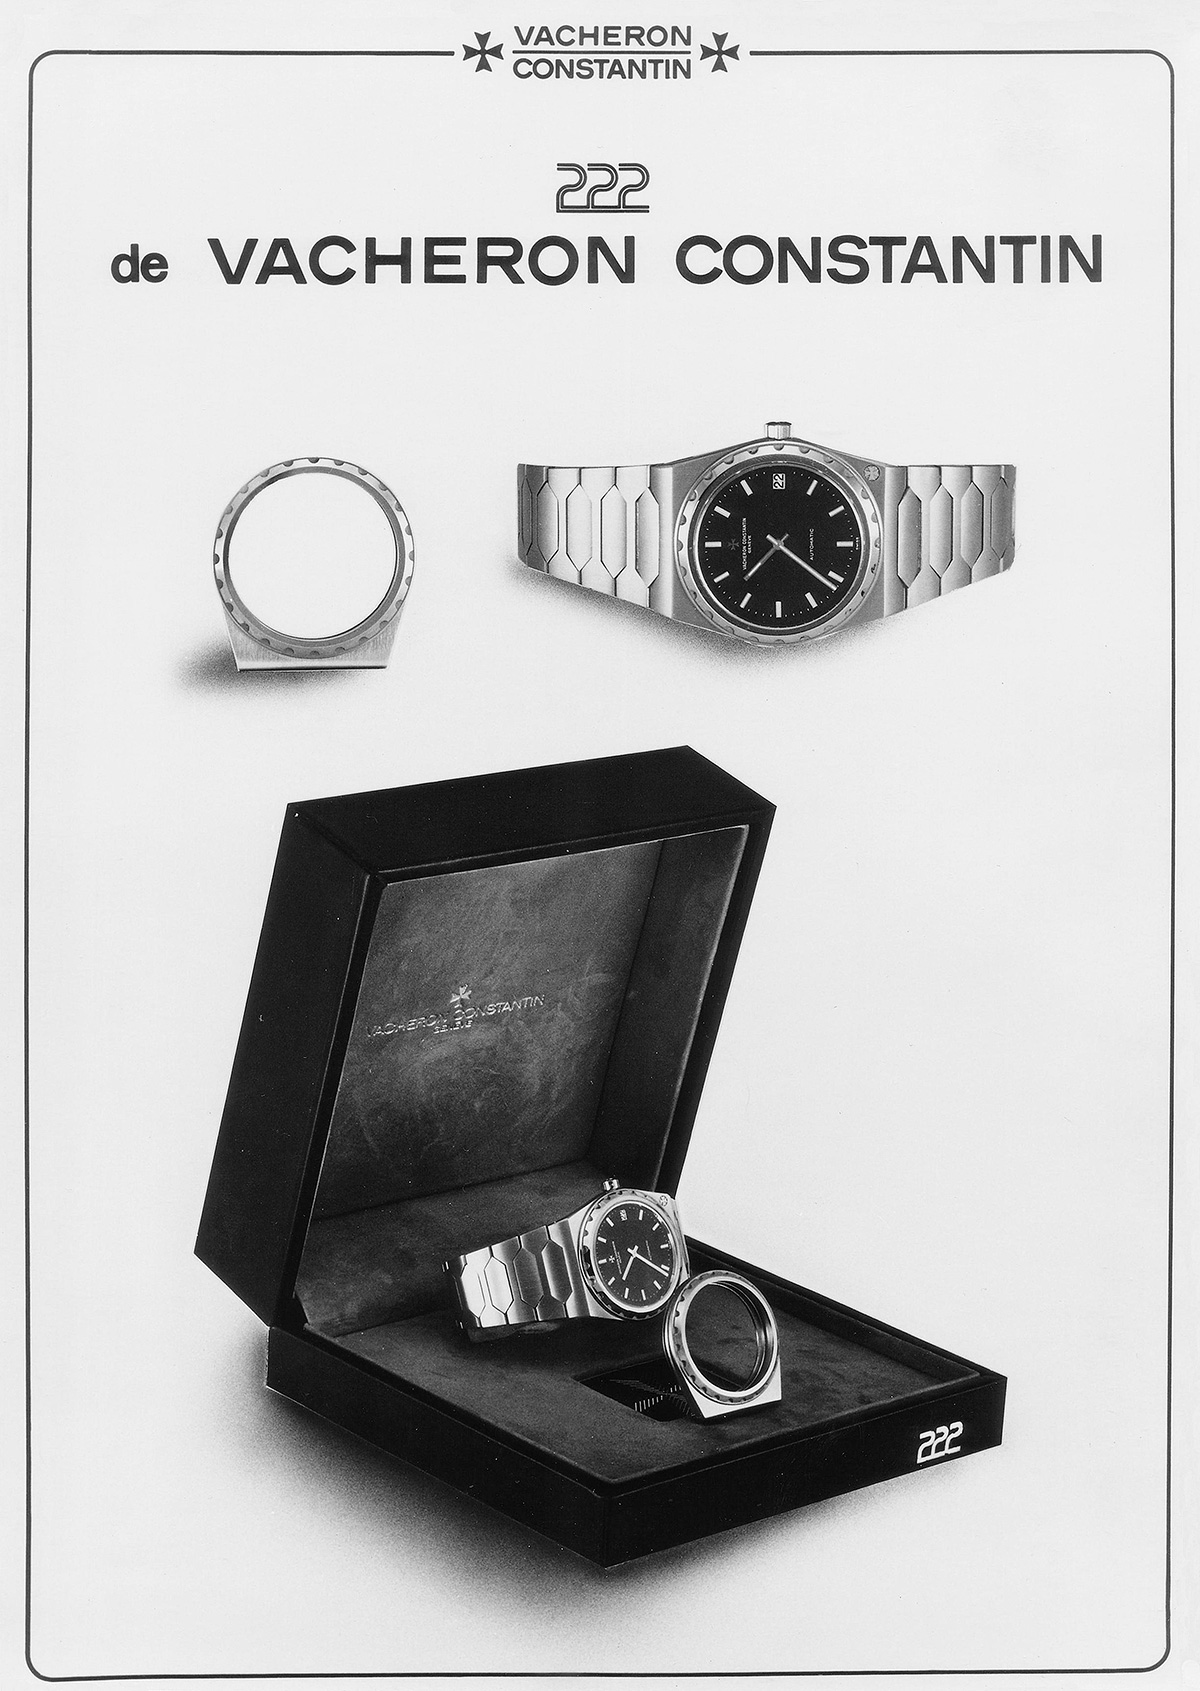 vacheron-constantin-222-advertising